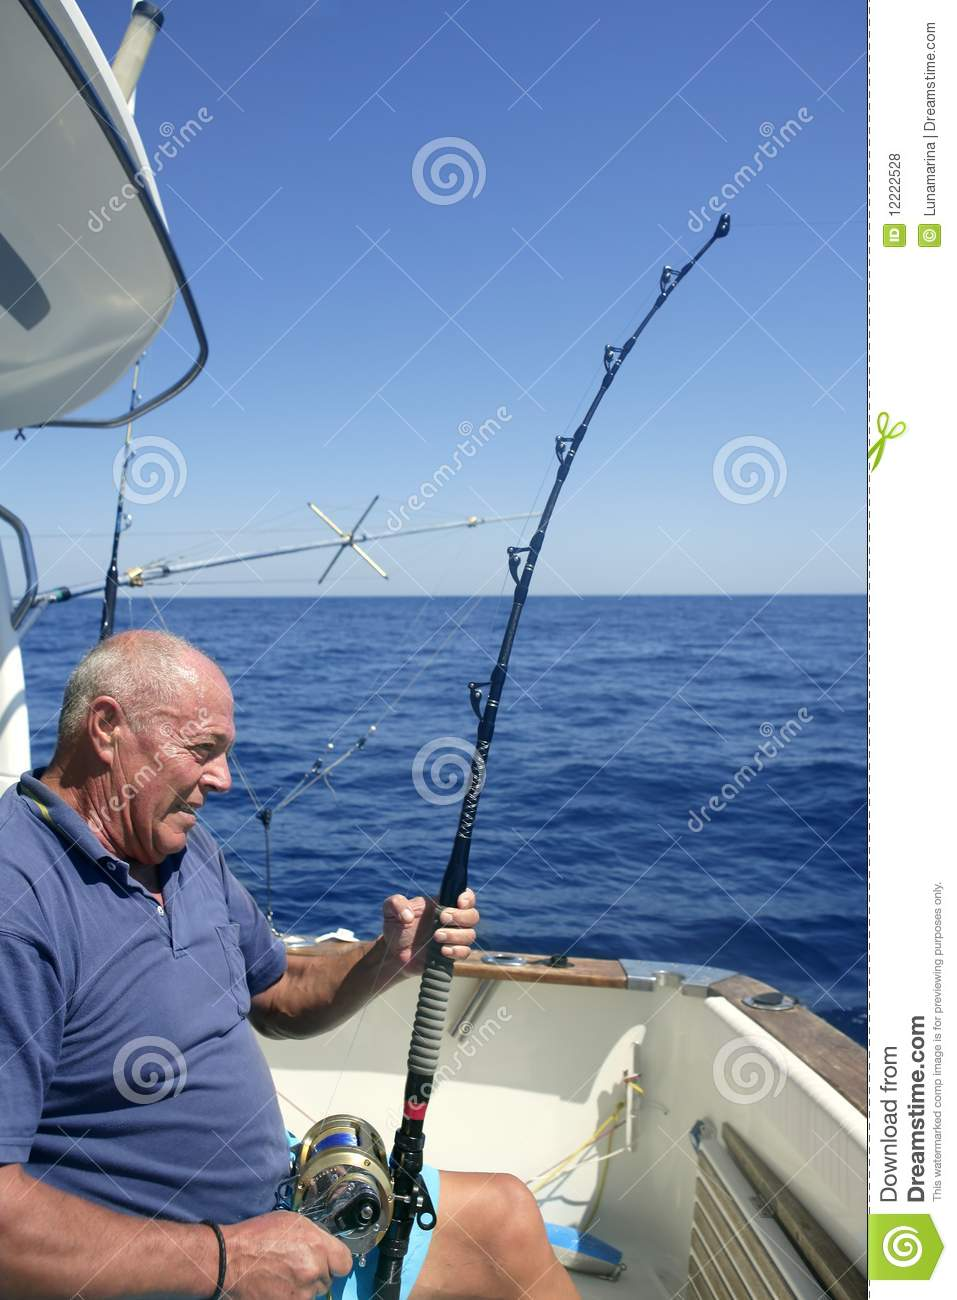 Angler fisherman fighting big fish rod and reel stock for Fishing boat games